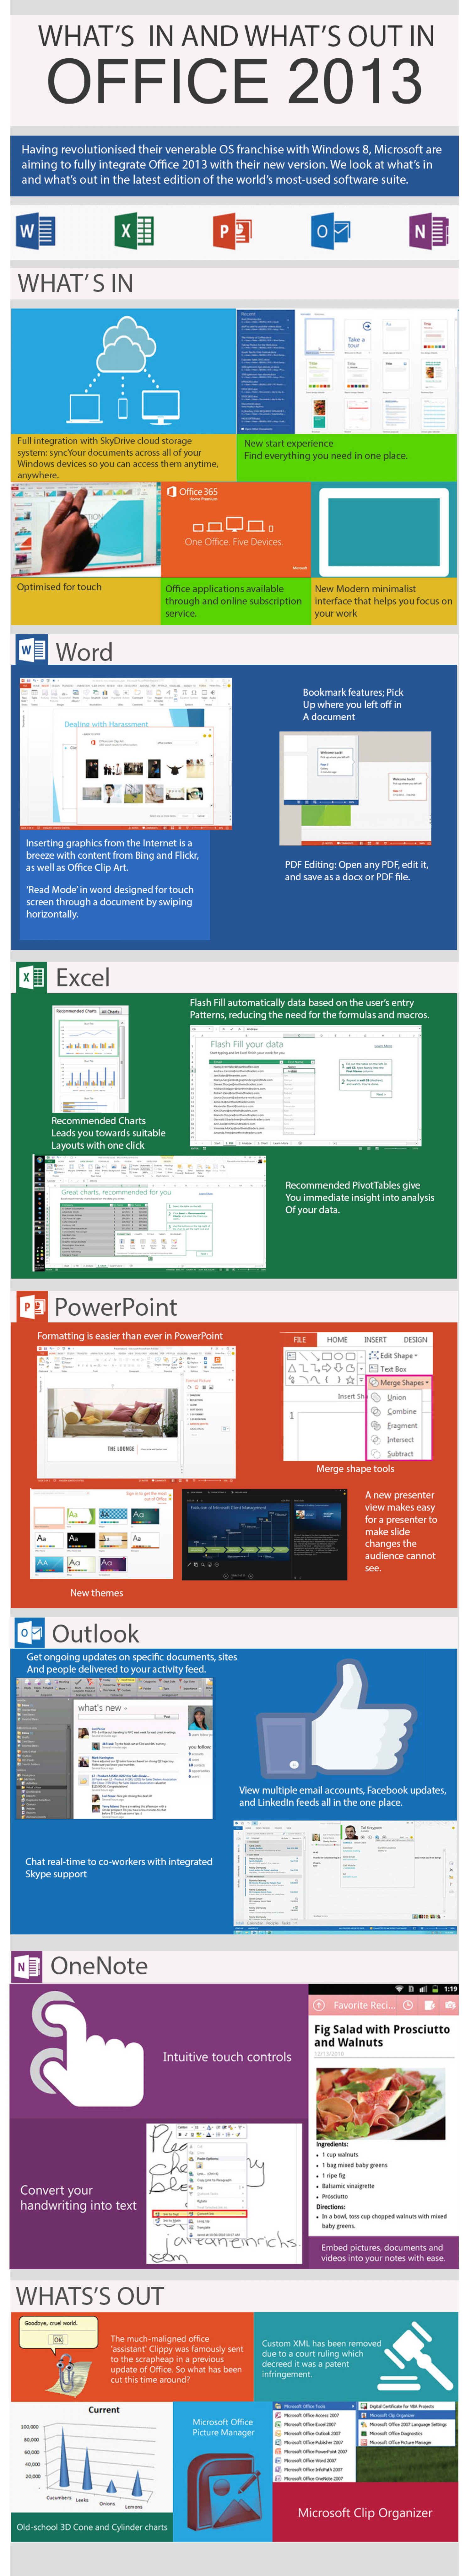 What's In And What's Out In Office 2013 Infographic